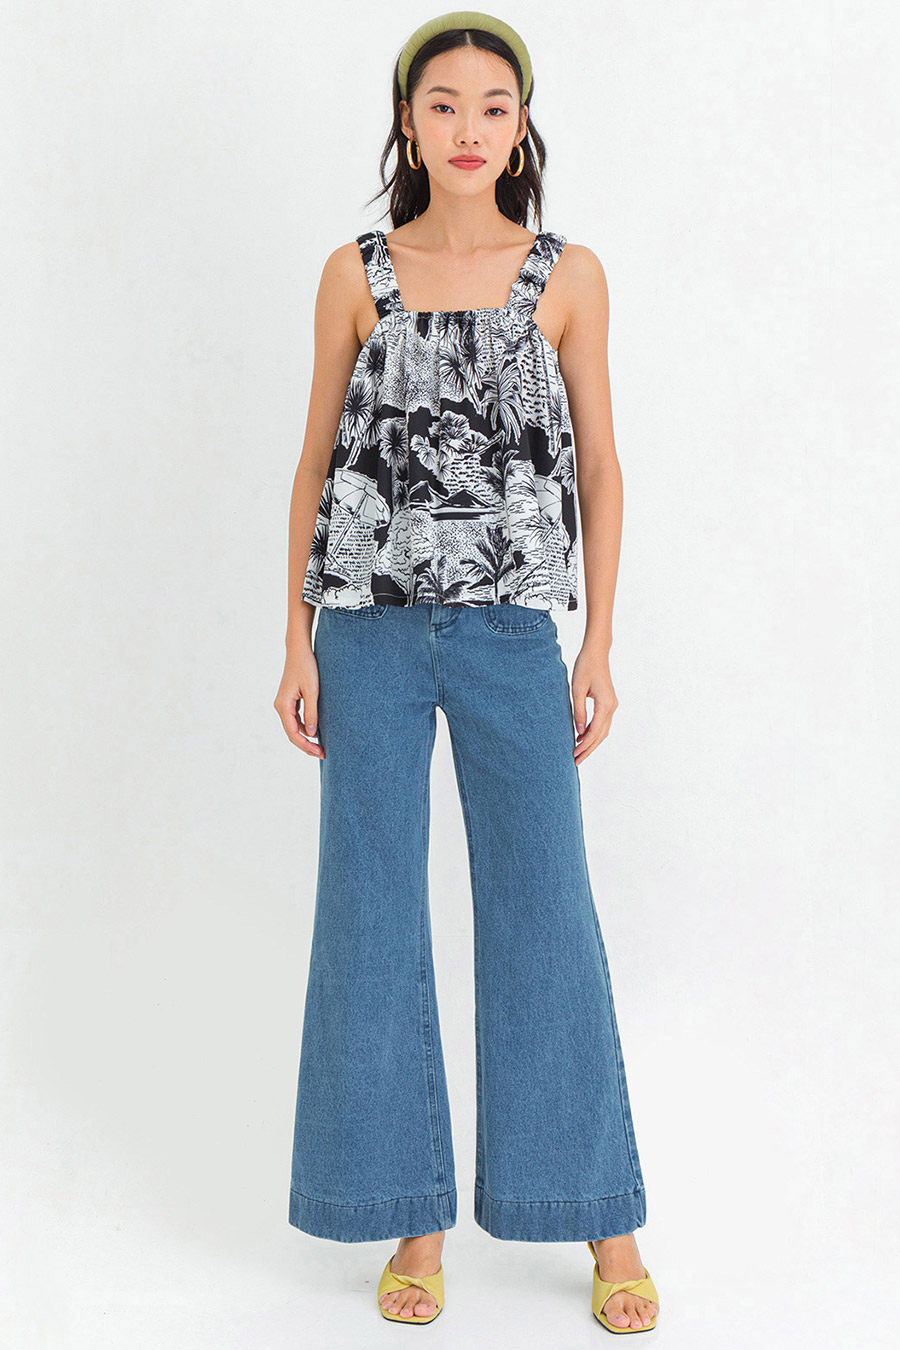 COLETTE TOP - PALM SPRING NOIR [BY MODPARADE]